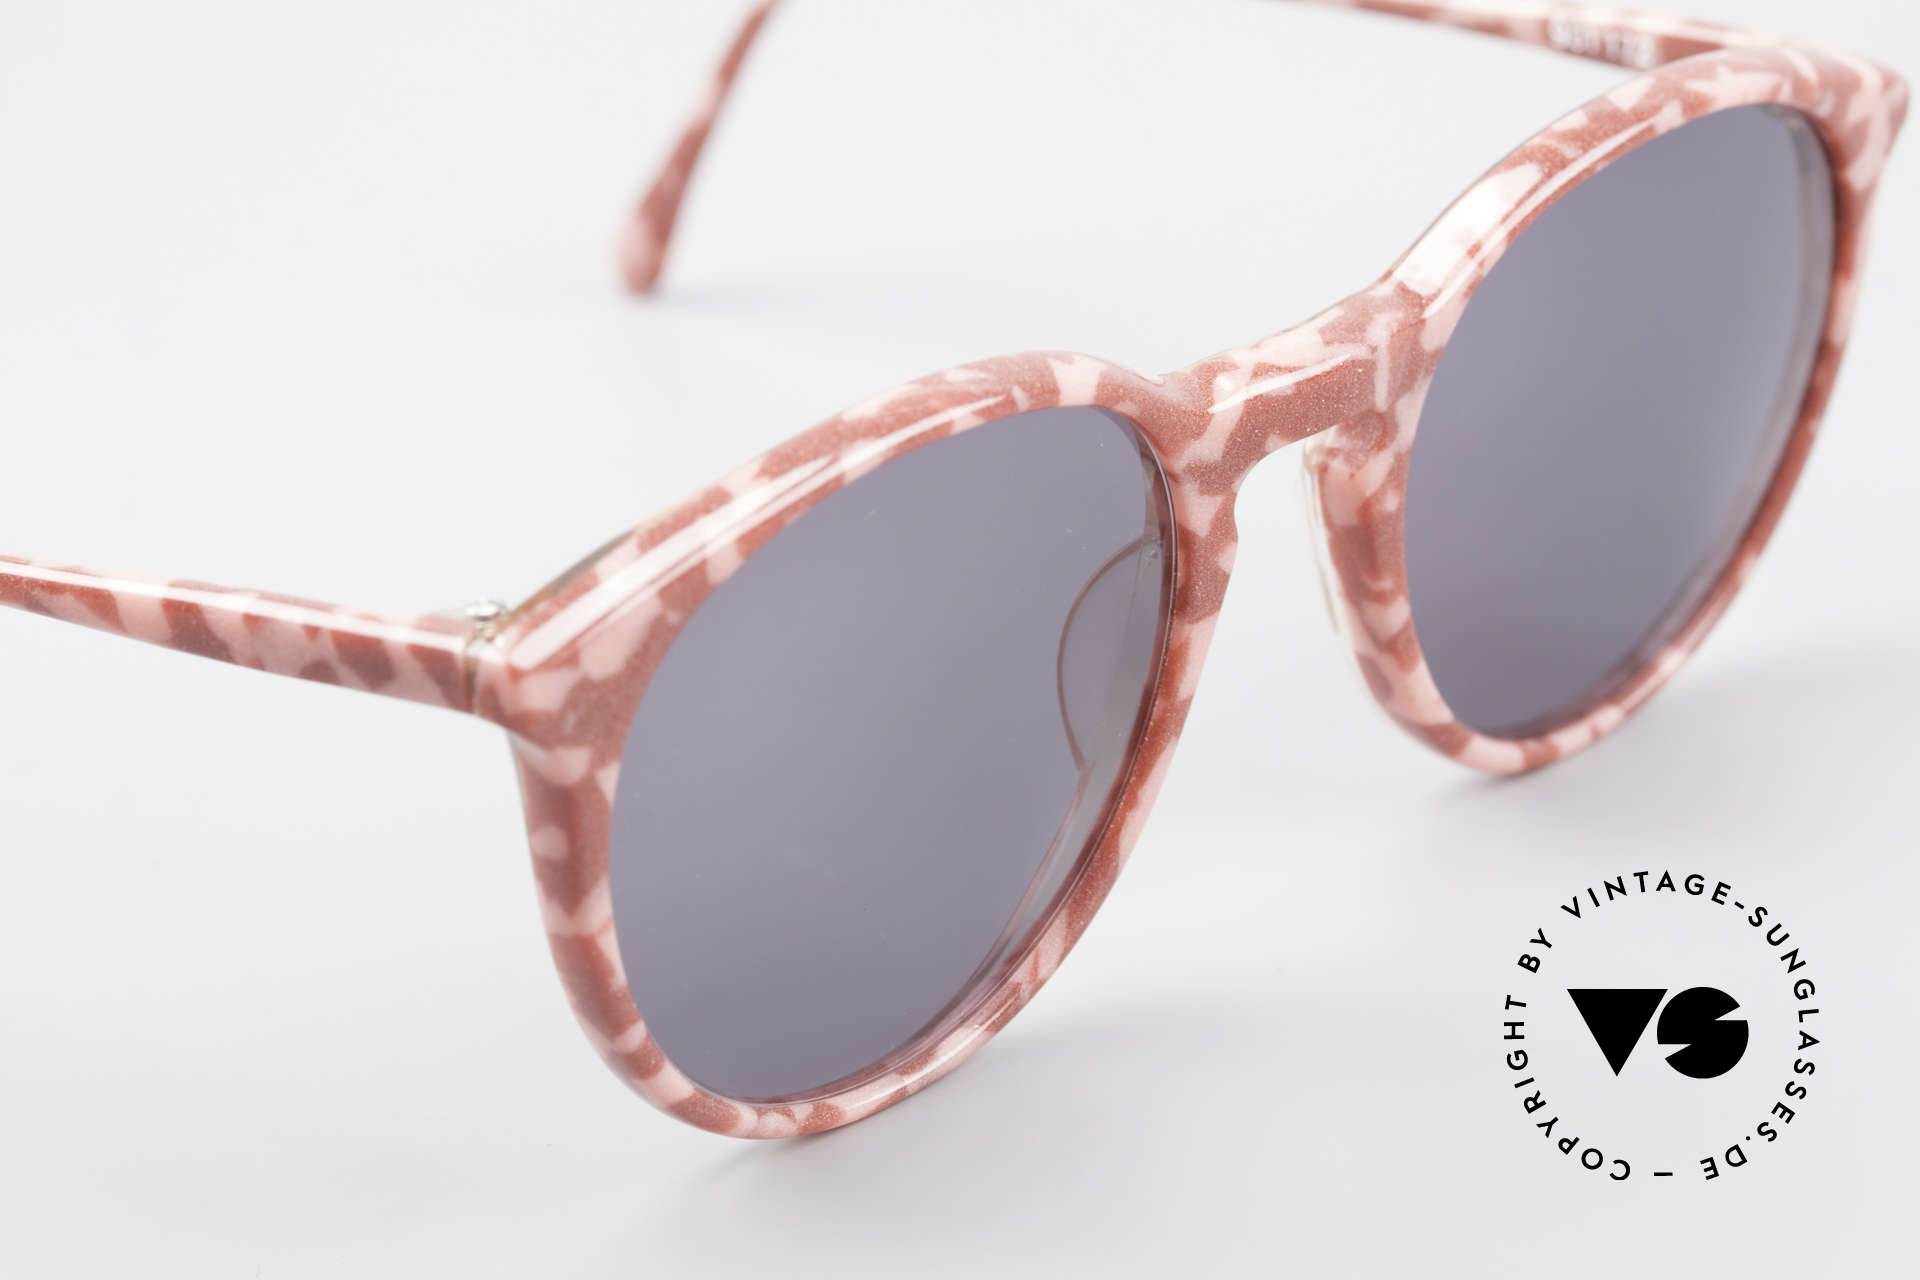 Alain Mikli 901 / 172 Panto Shades Red Pink Marbled, never worn (like all our vintage Alain Mikli specs), Made for Women